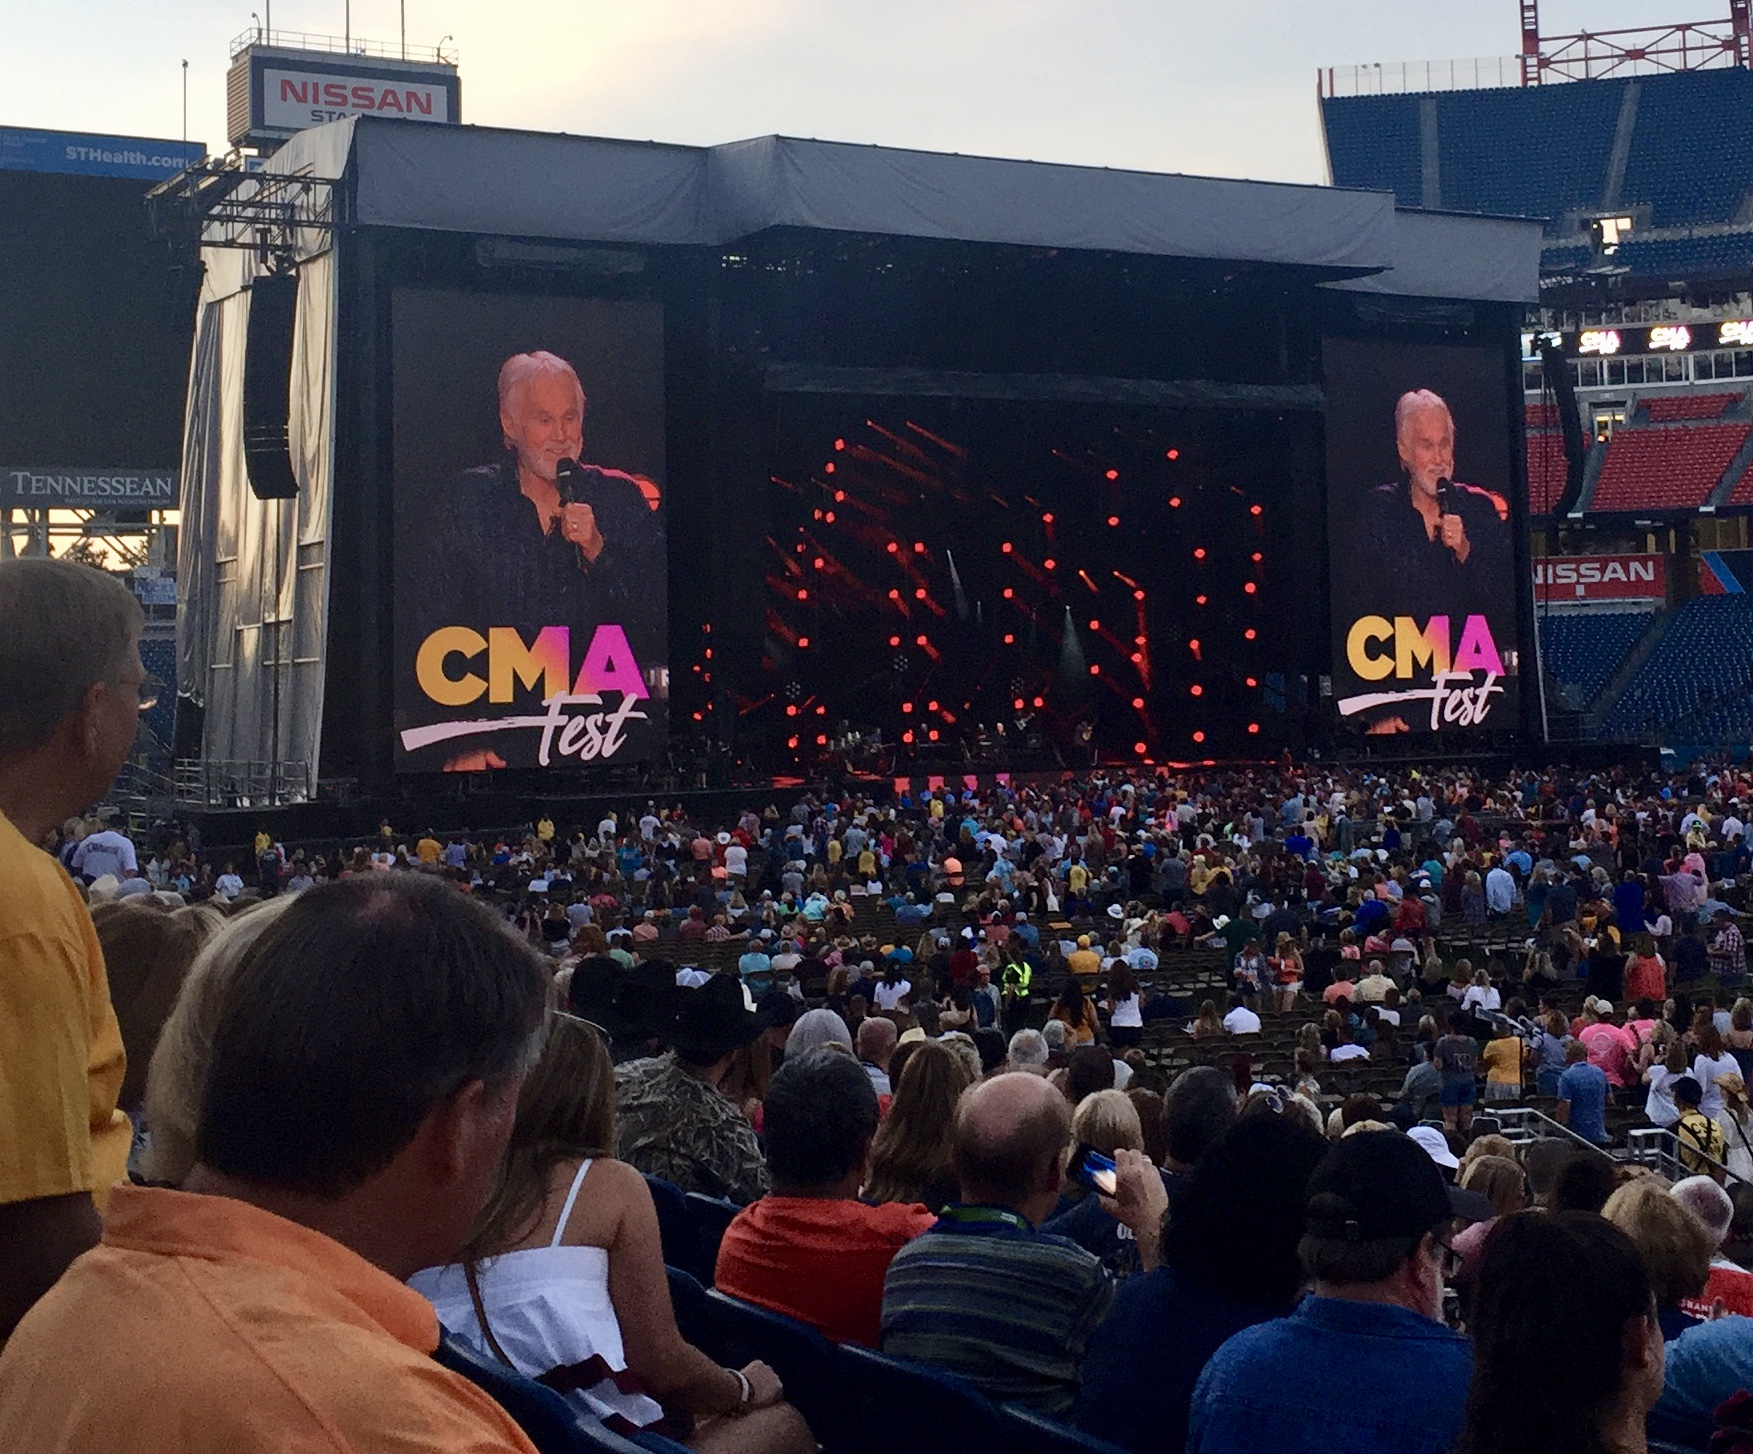 Nashville's annual CMA Music Festival is the ultimate country music lovers event that takes place for four days in June. Photo by Melody Pittman.